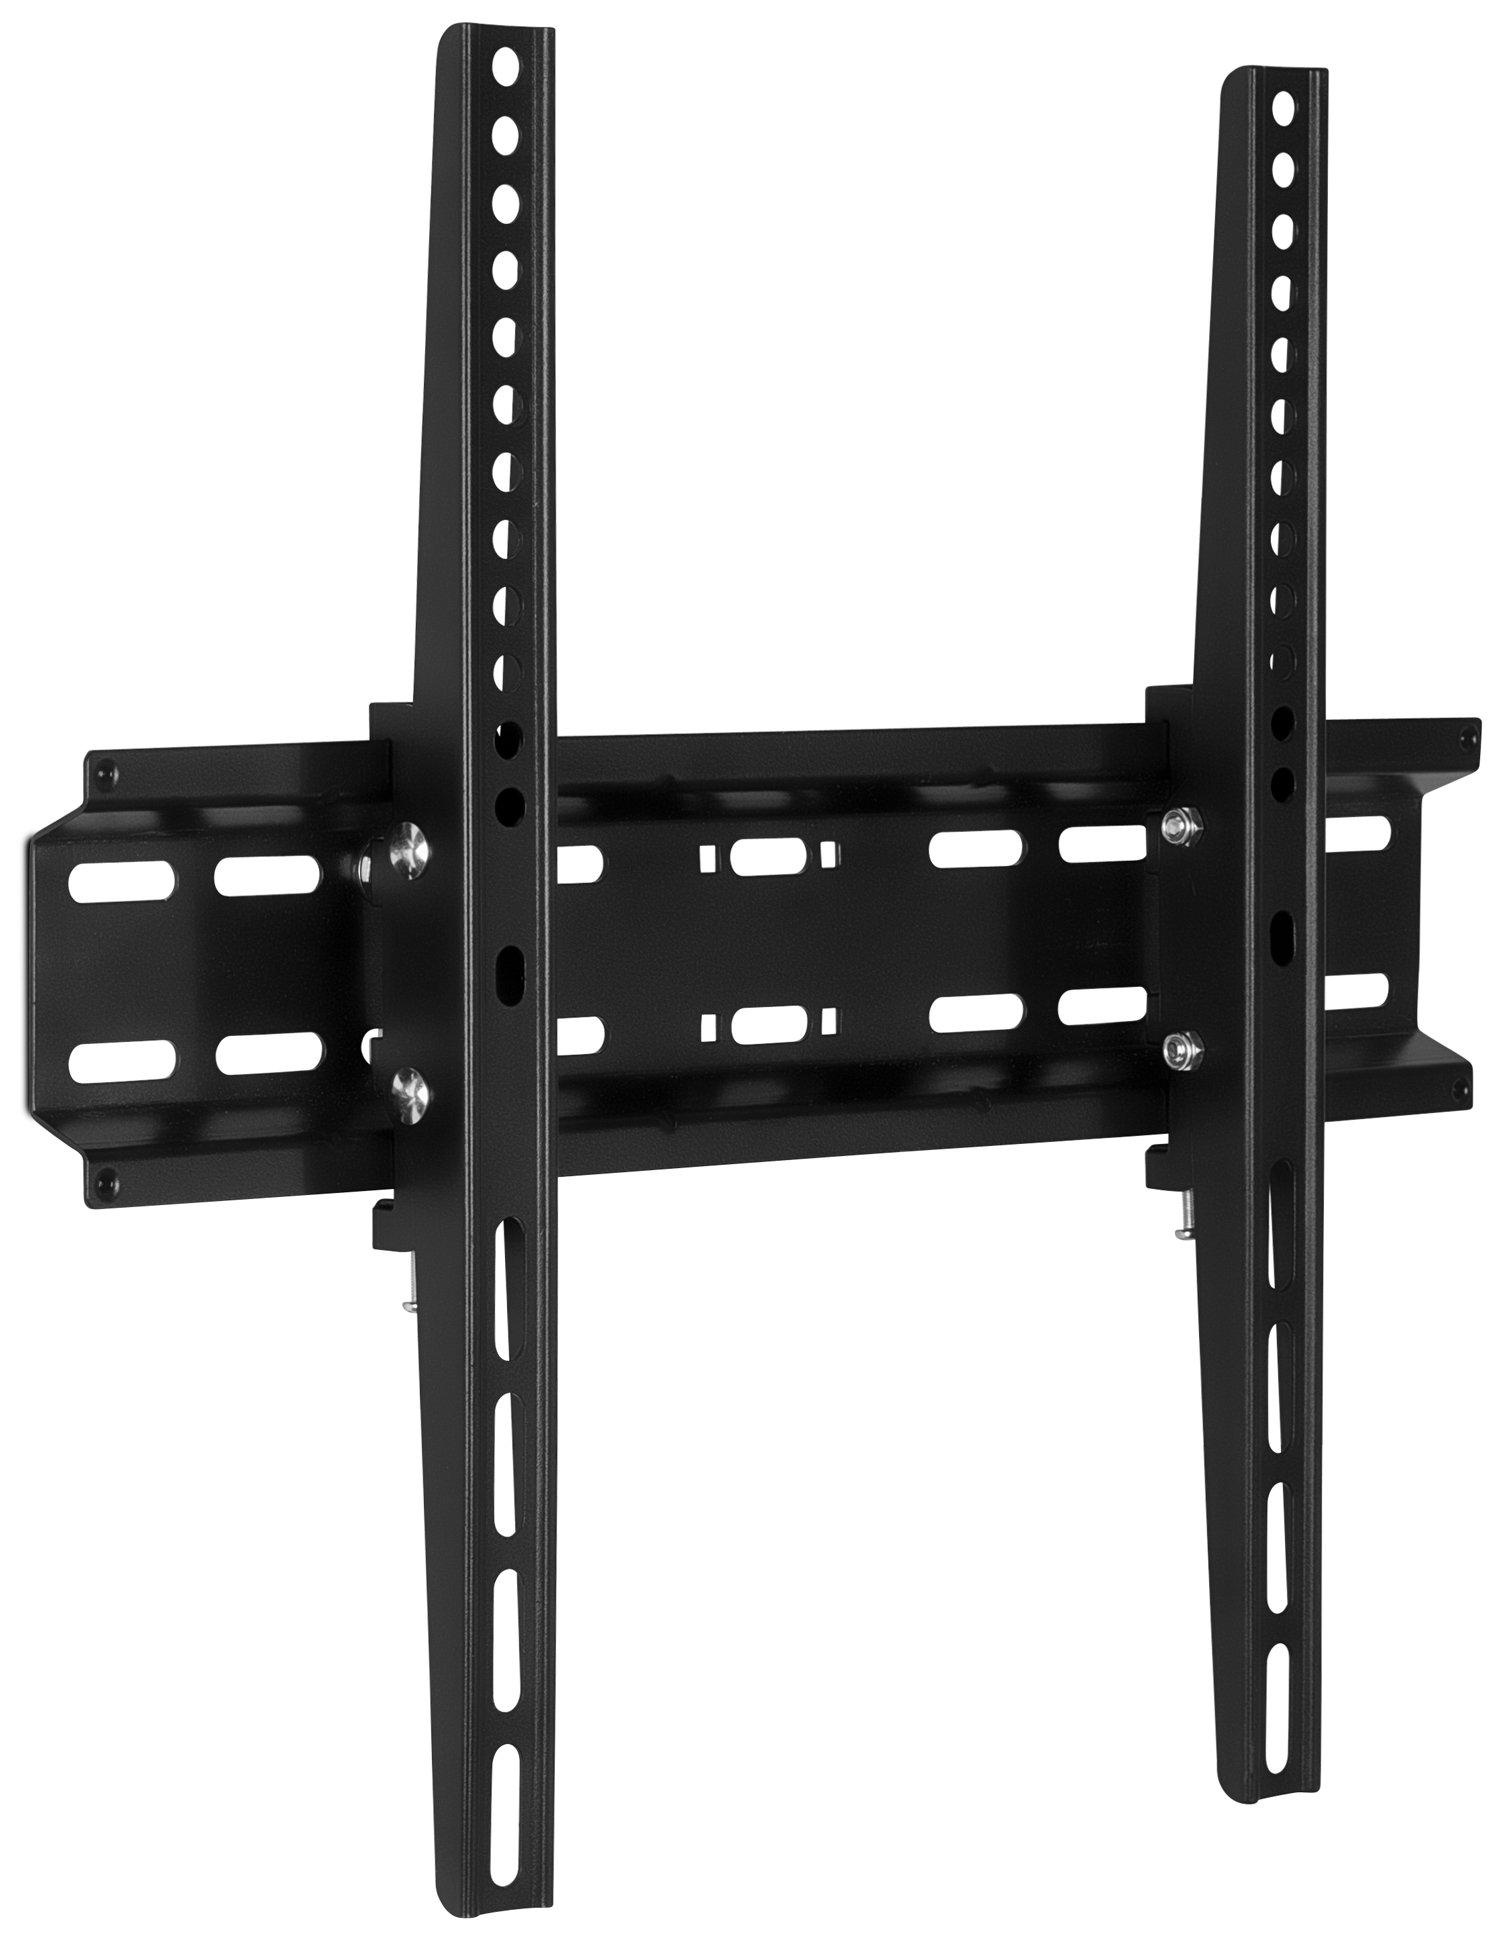 Tilting Flatscreen Wall Mount TV for 30, 32, 37, 39, 40, 42, 43, 47, 49, 50, 55 inch LED, LCD, and Plasma televisions - 77 lbs Capacity, 2'' Low Profile Design, Max VESA 400 x 400